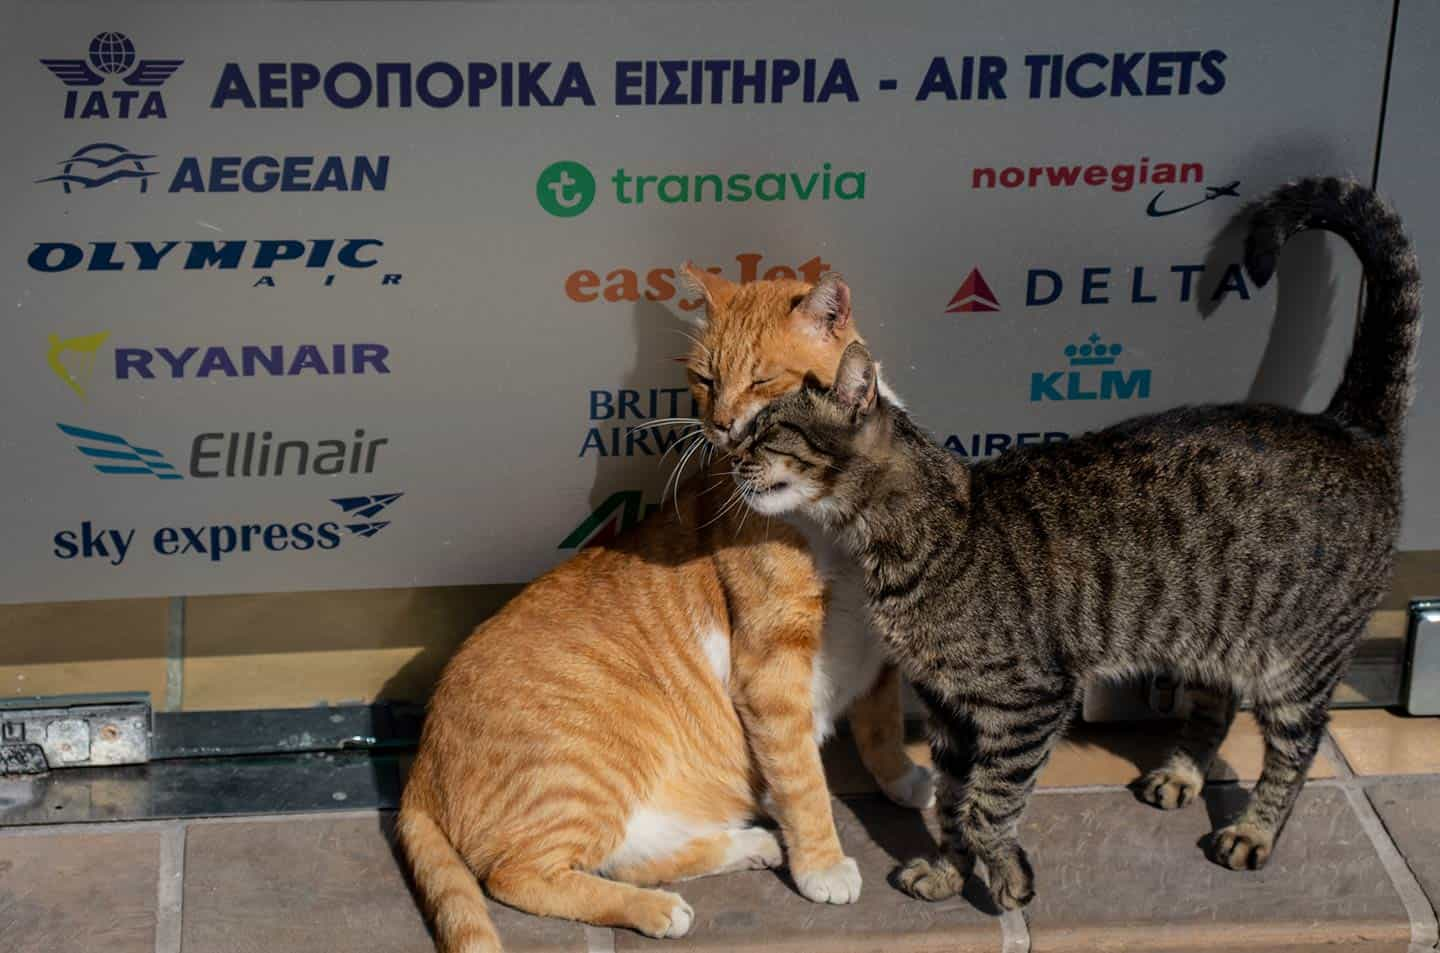 Image of two cats outside a travel agency door in in Paleochora Crete